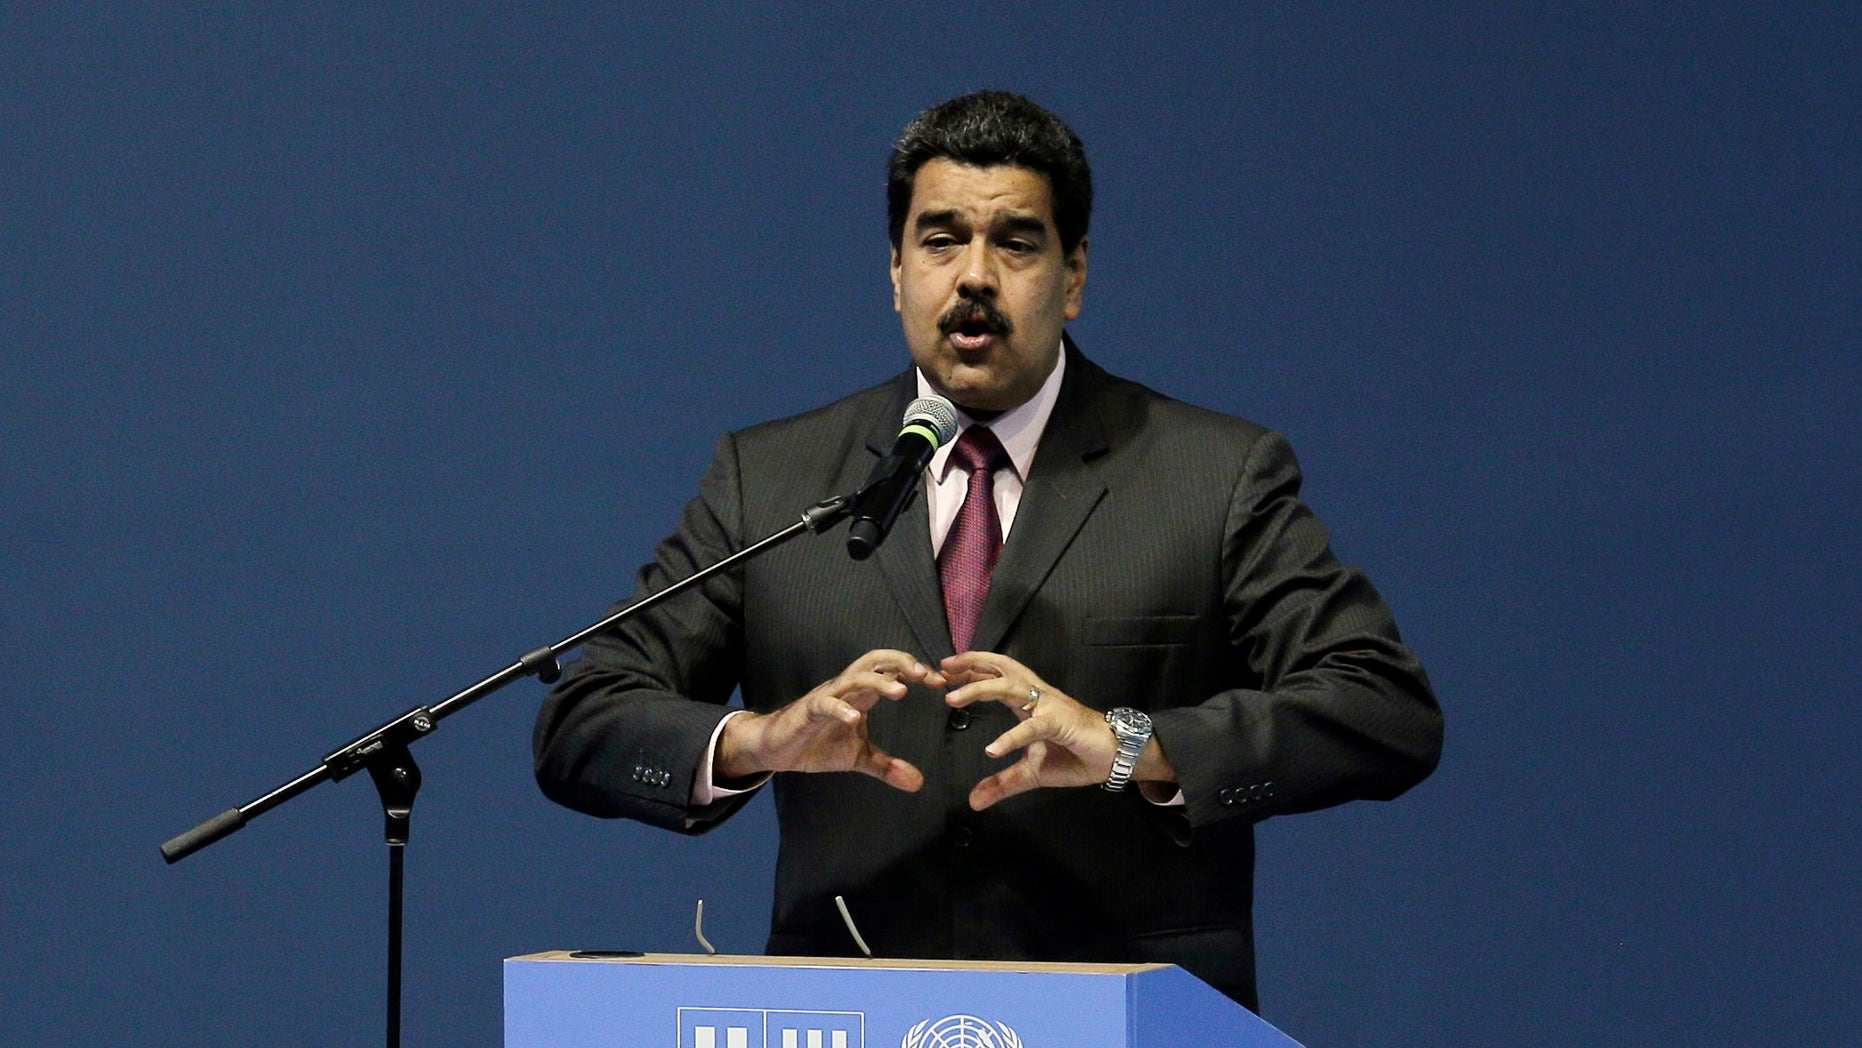 President Maduro during the opening of the United Nations Habitat Conference, in Quito, Ecuador, Oct. 17, 2016.